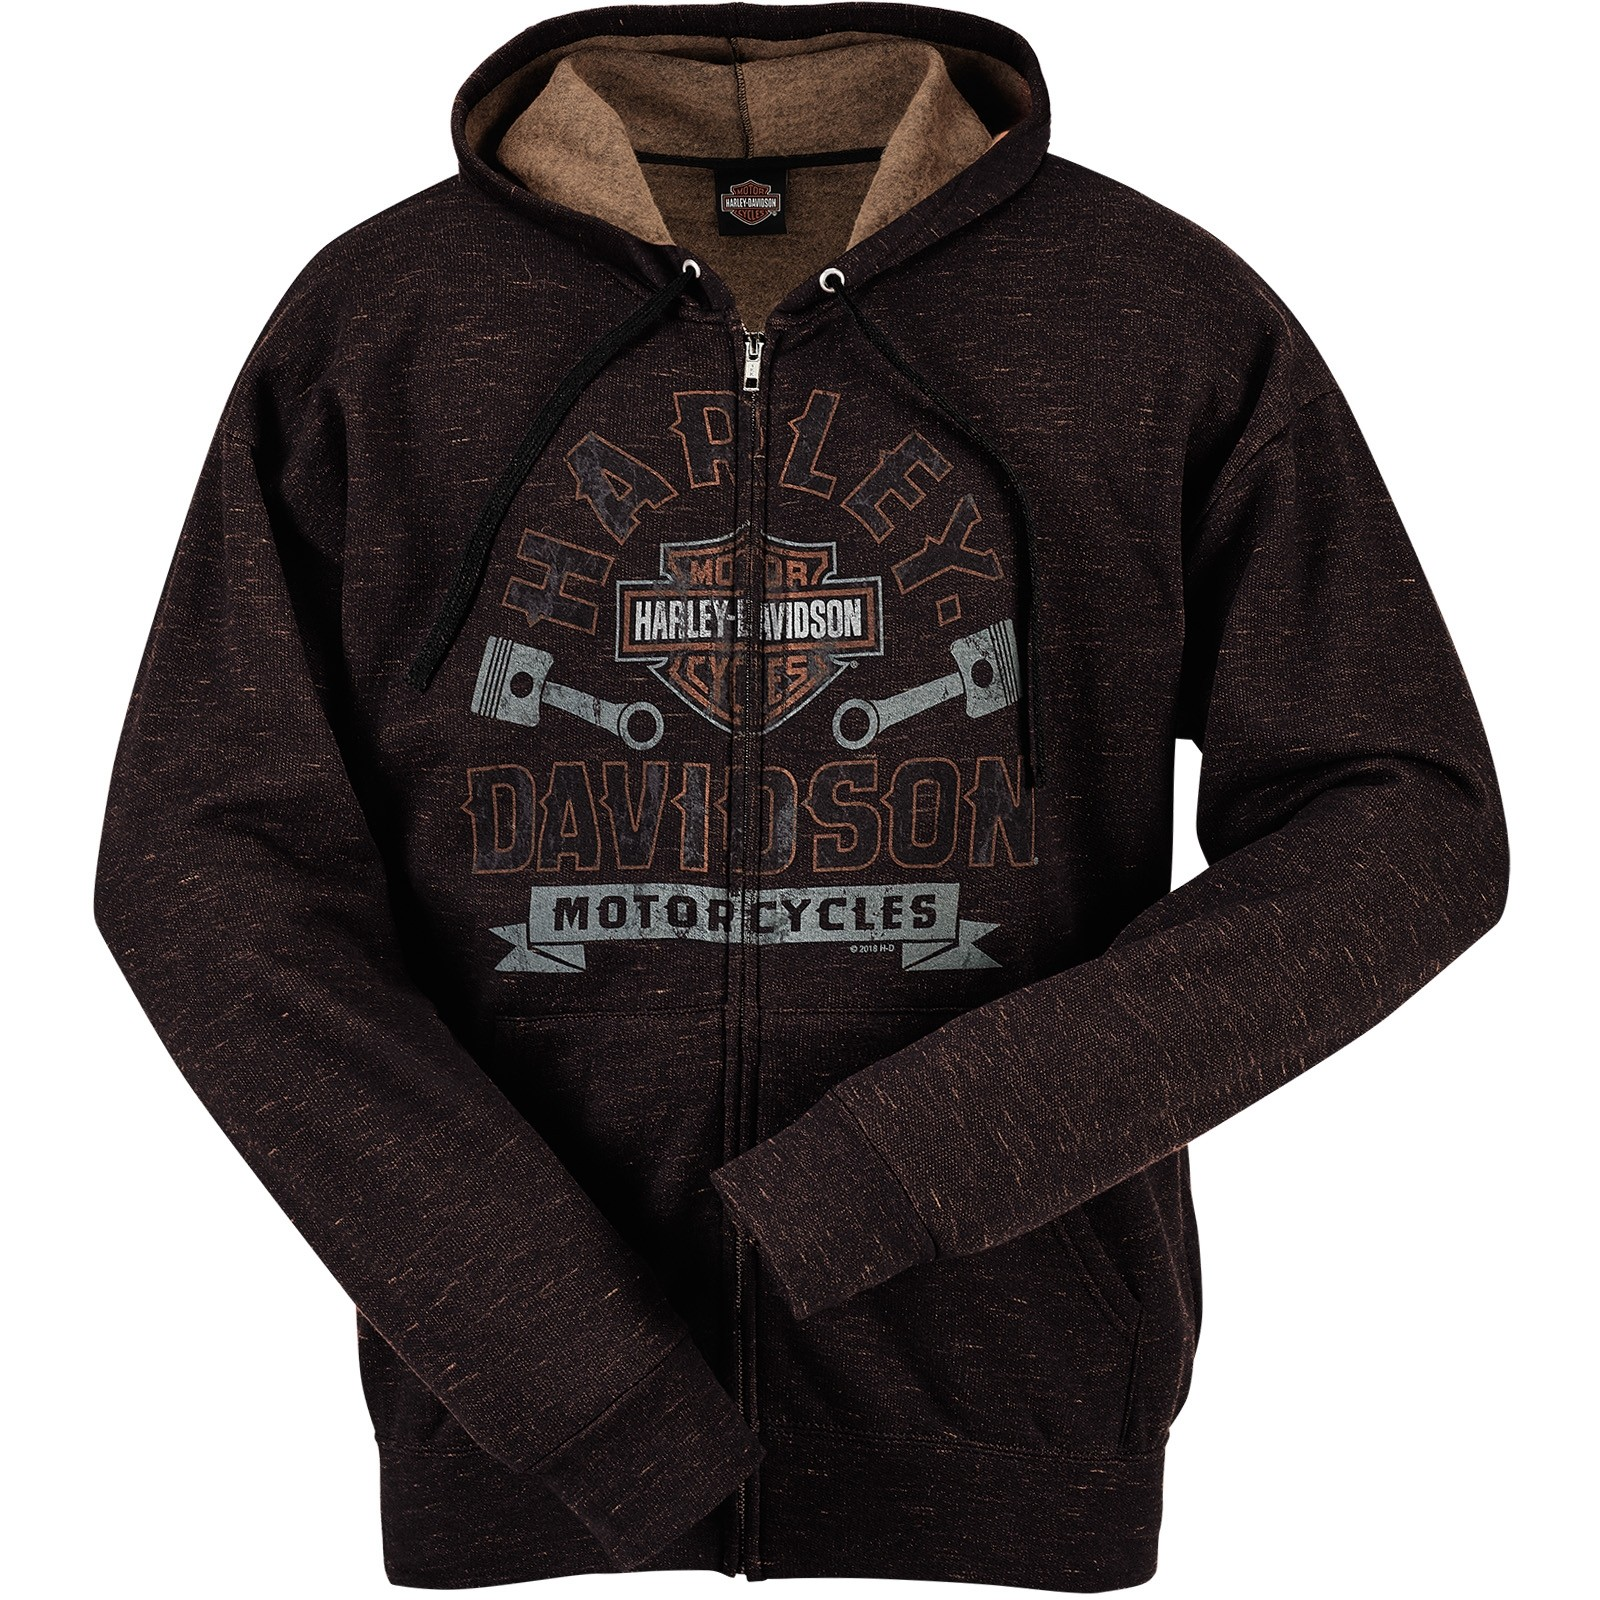 Harley-Davidson Military Zippered Hooded Sweatshirt - Overseas Tour | Marbled